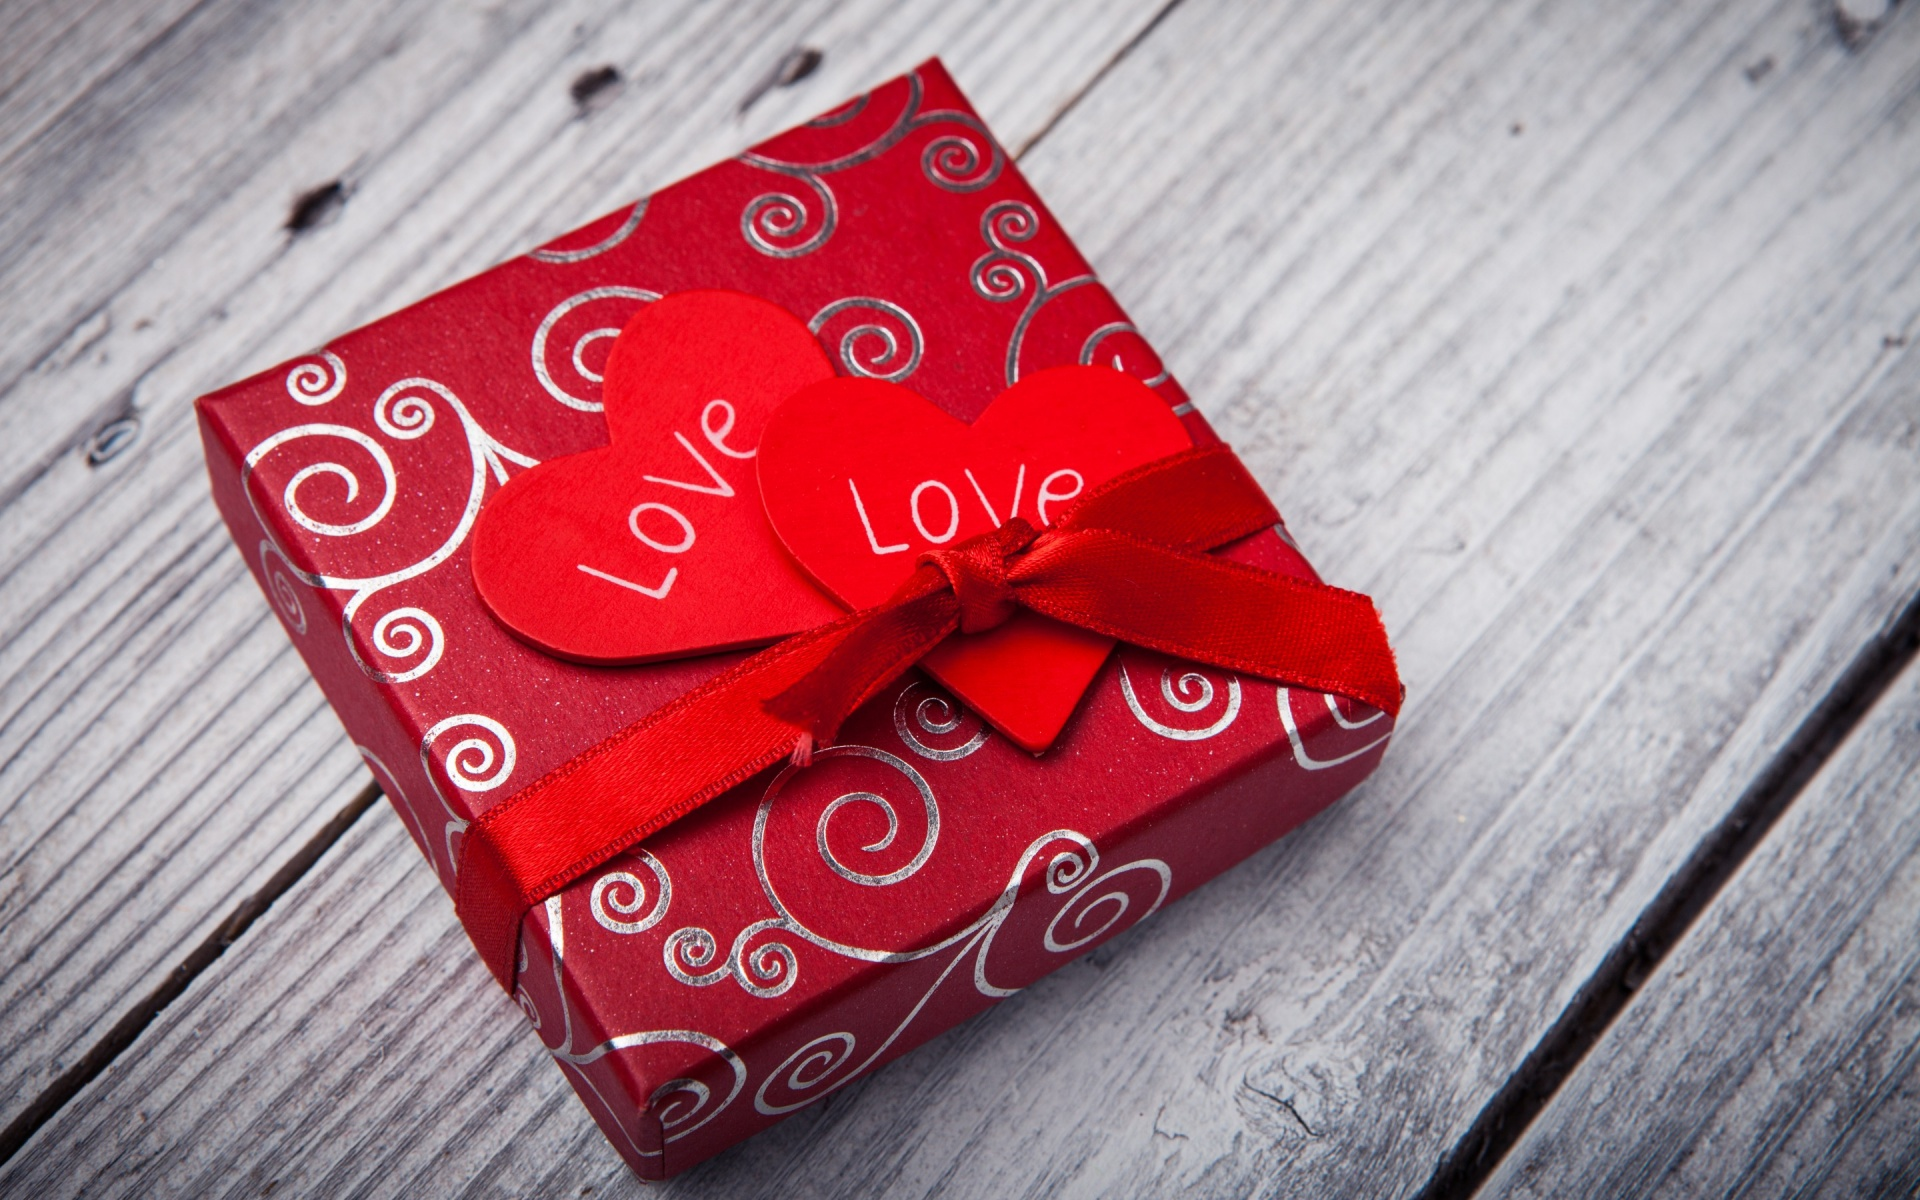 Love Gift Wallpapers : Romantic Love Gift Valentines Day Wallpapers - 1920x1200 ...